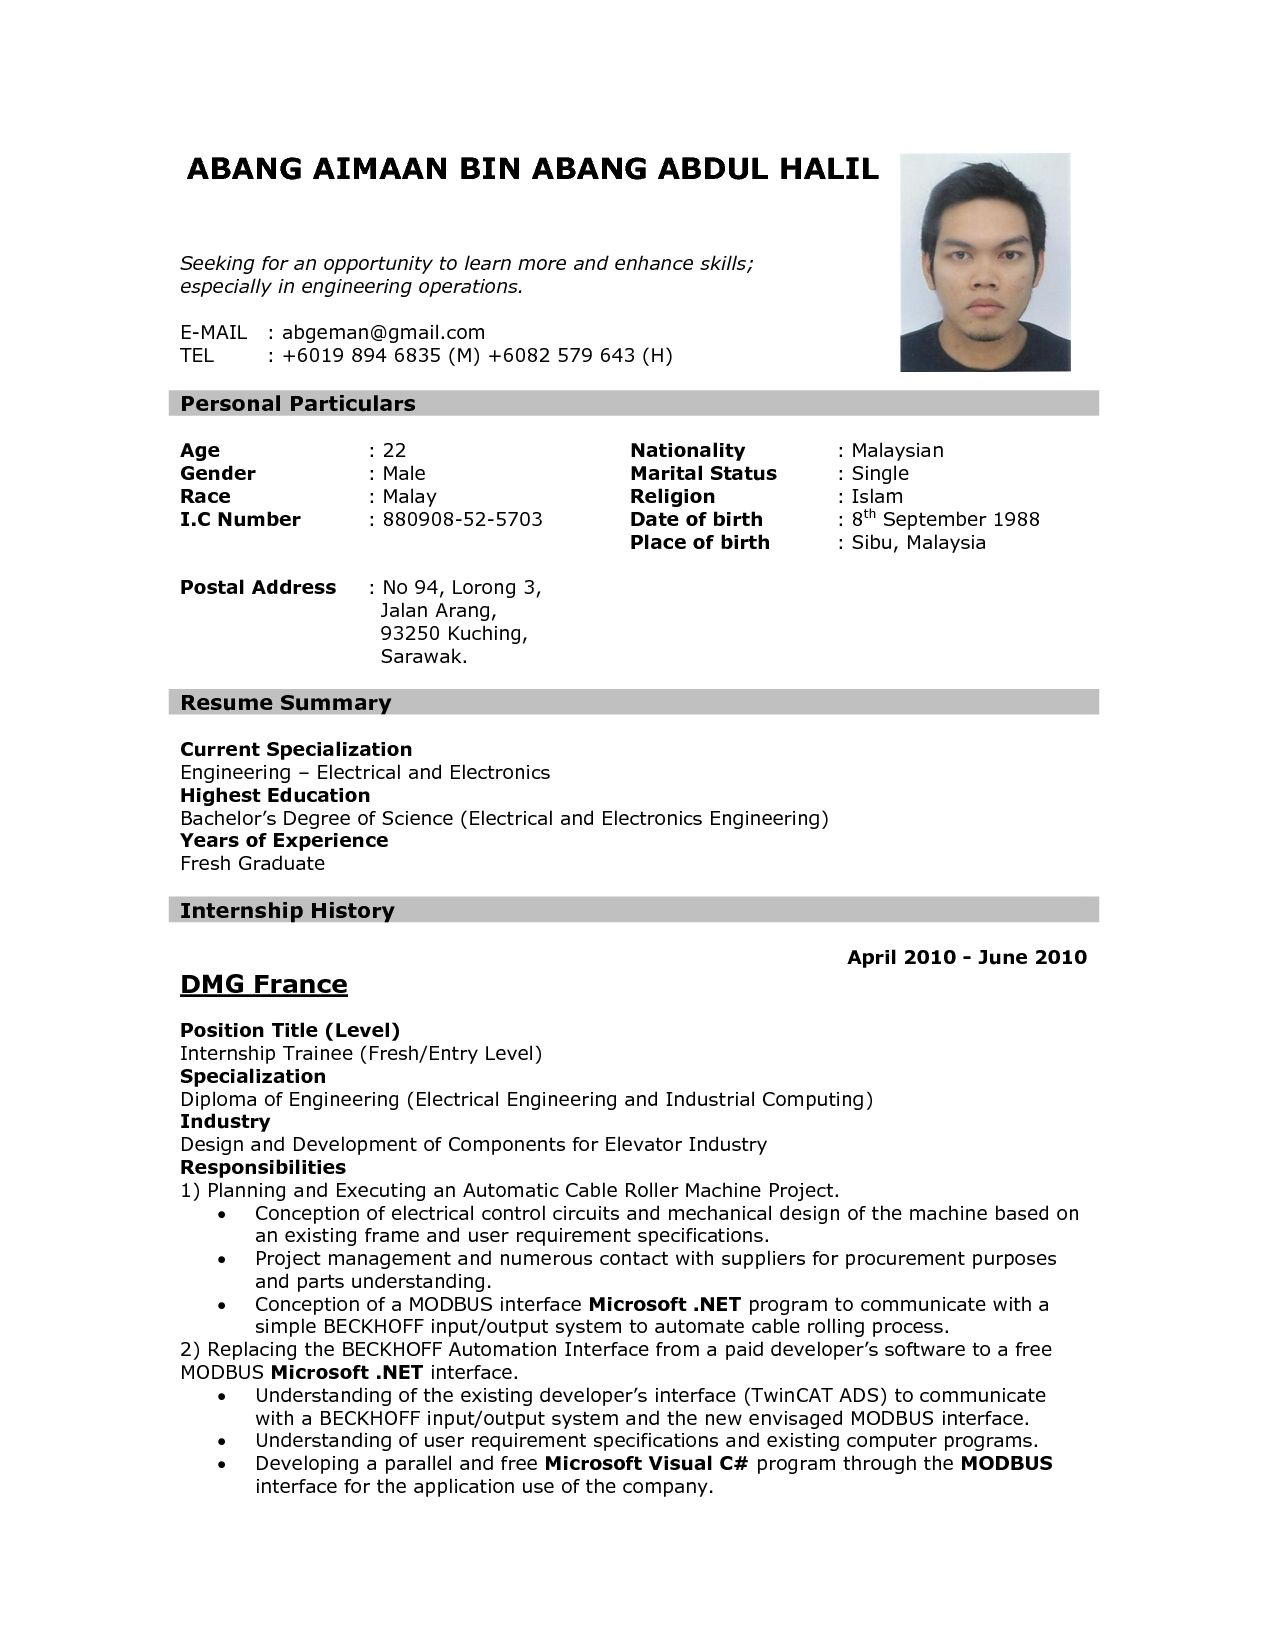 new resume styles Template Job resume format, Job